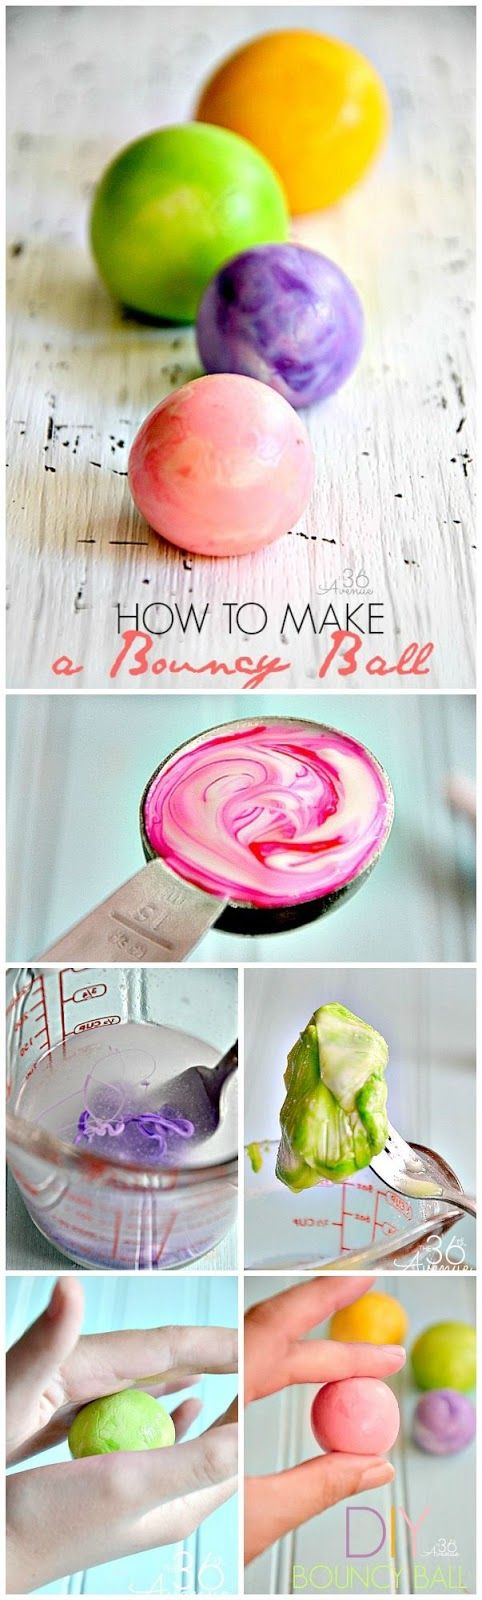 How To Make A Bouncy Ball ProjectsDiy Summer